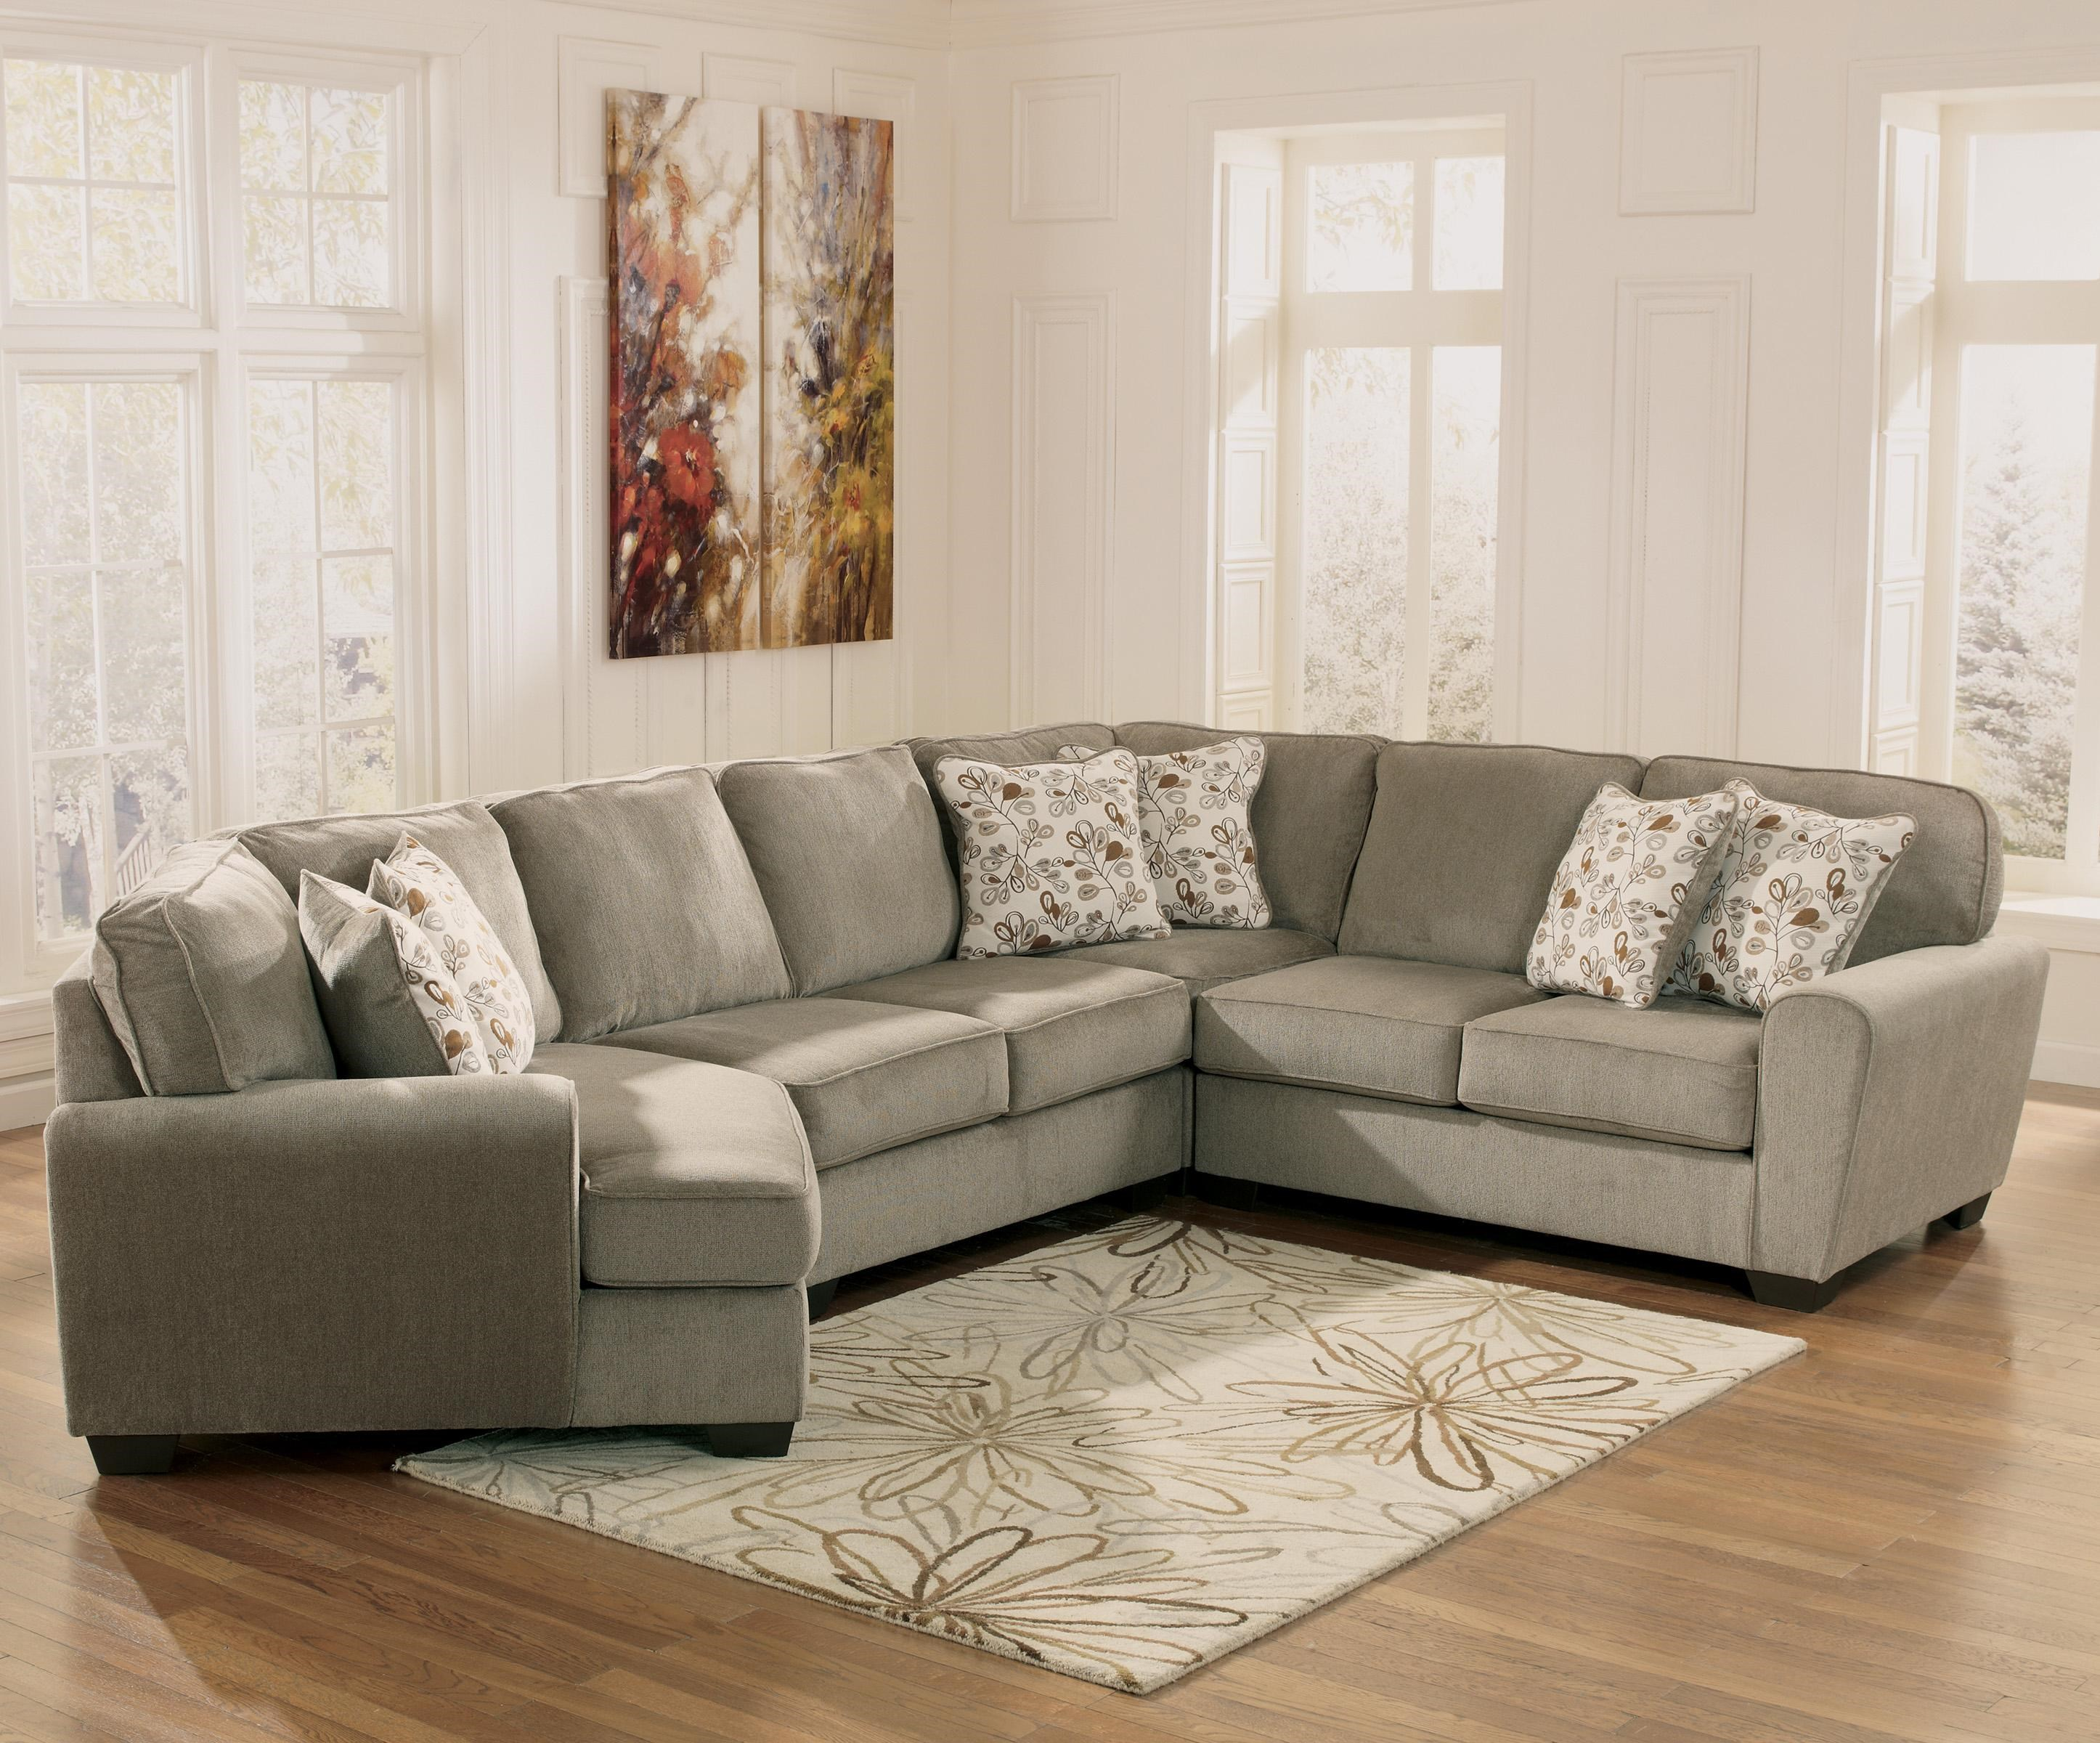 Ashley Furniture Patola Park - Patina 4-Piece Small Sectional with Left Cuddler - Van Hill Furniture - Sofa Sectional : cuddle chaise sectional - Sectionals, Sofas & Couches